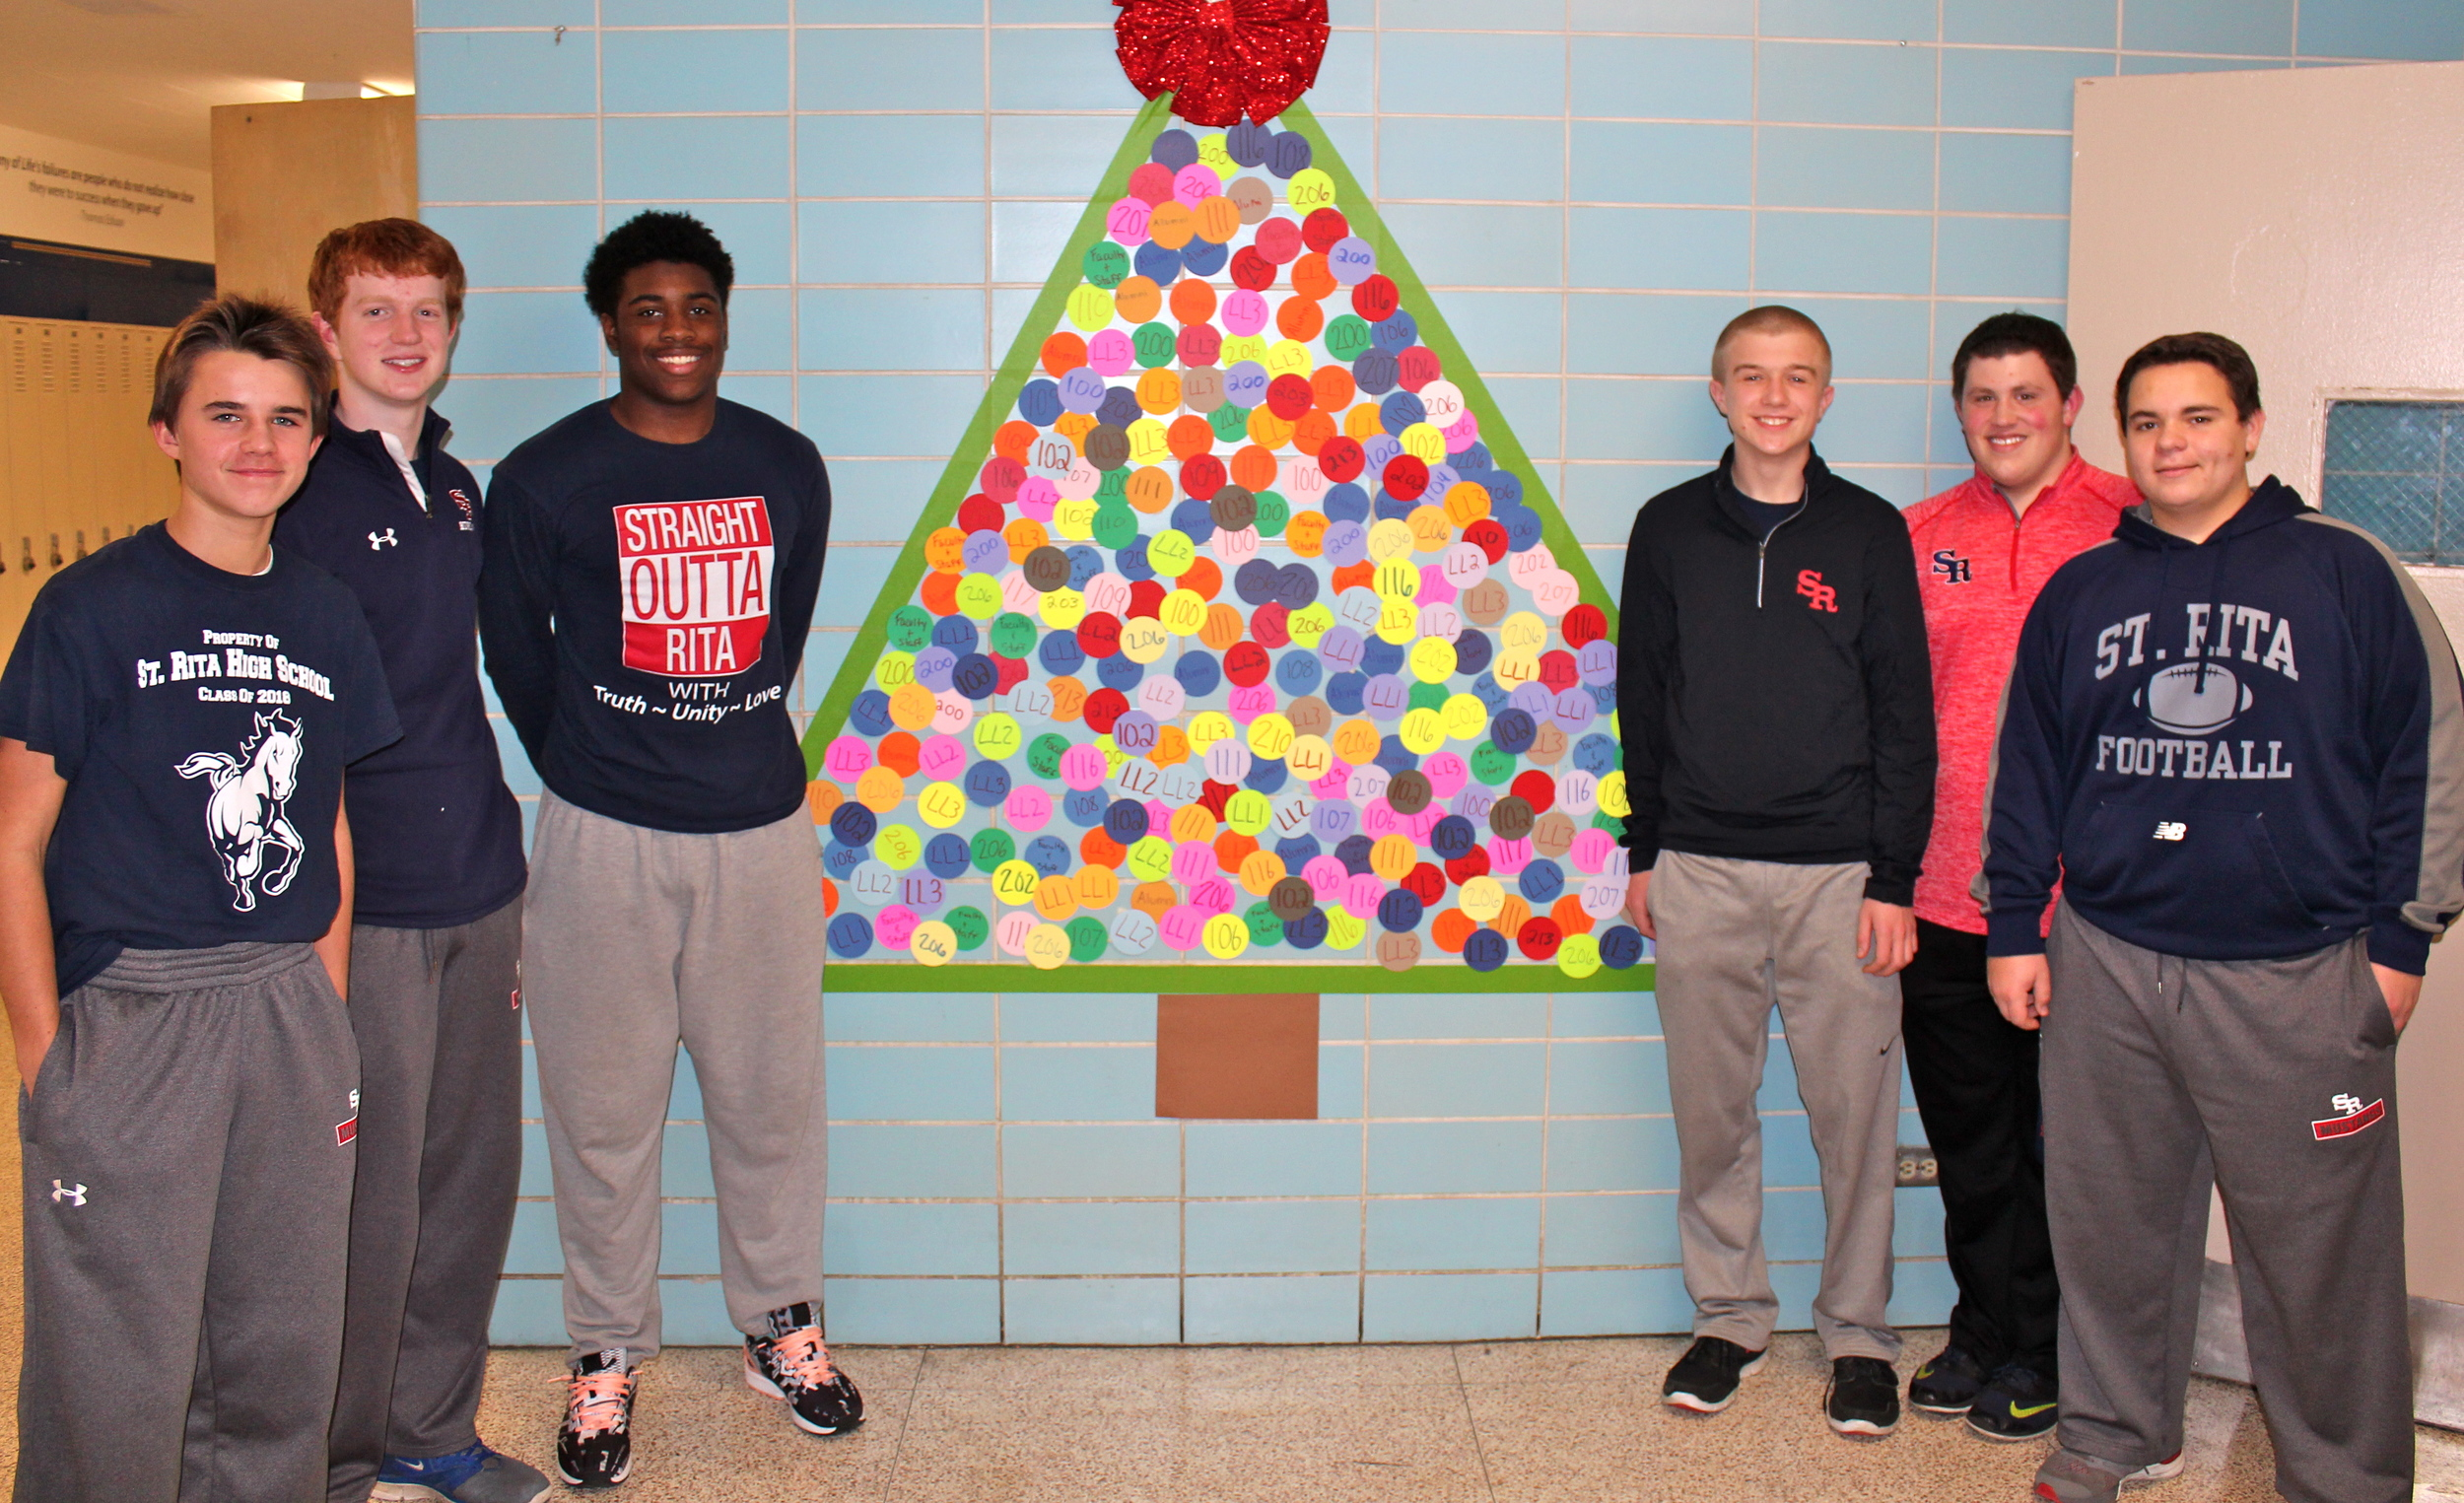 Sophomore Student Government Officers at the St. Rita Giving Tree. (L to R):Will March, Liam Connolly, Louis Cox,Payton Condon, Chase Marshall, Connor Cahill